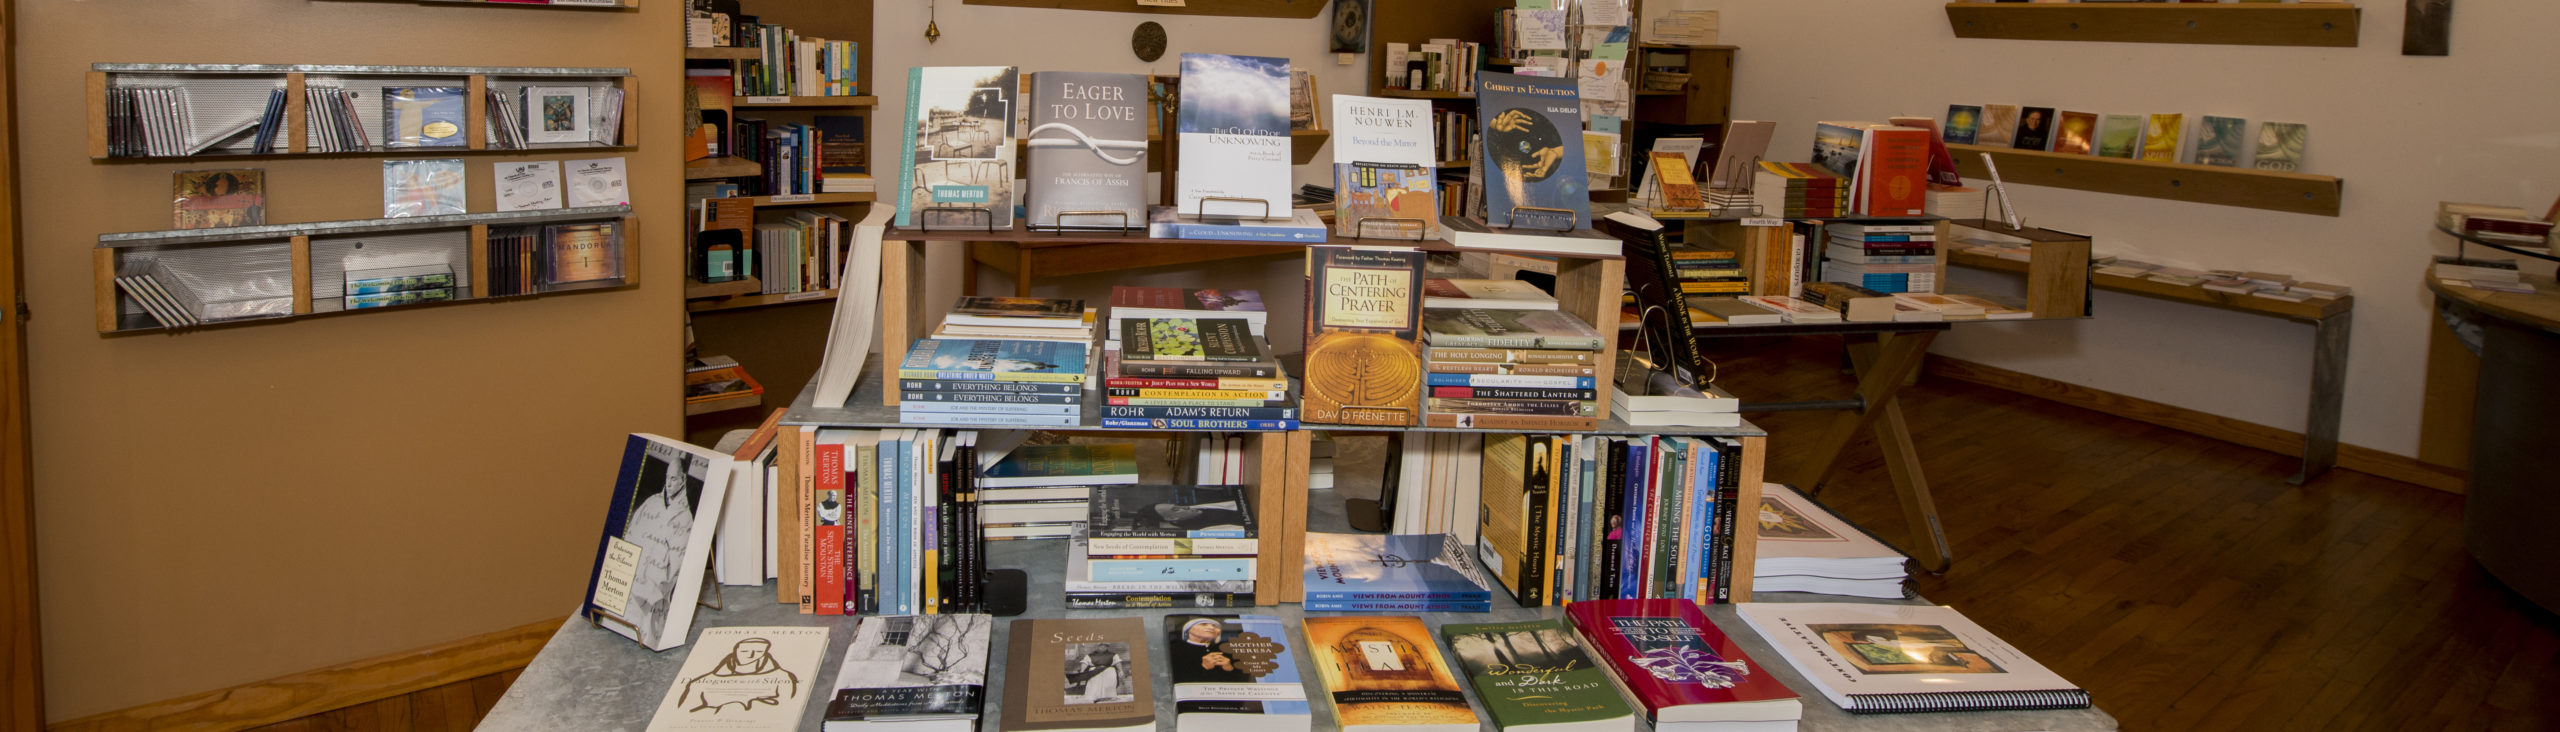 how to start a church bookstore